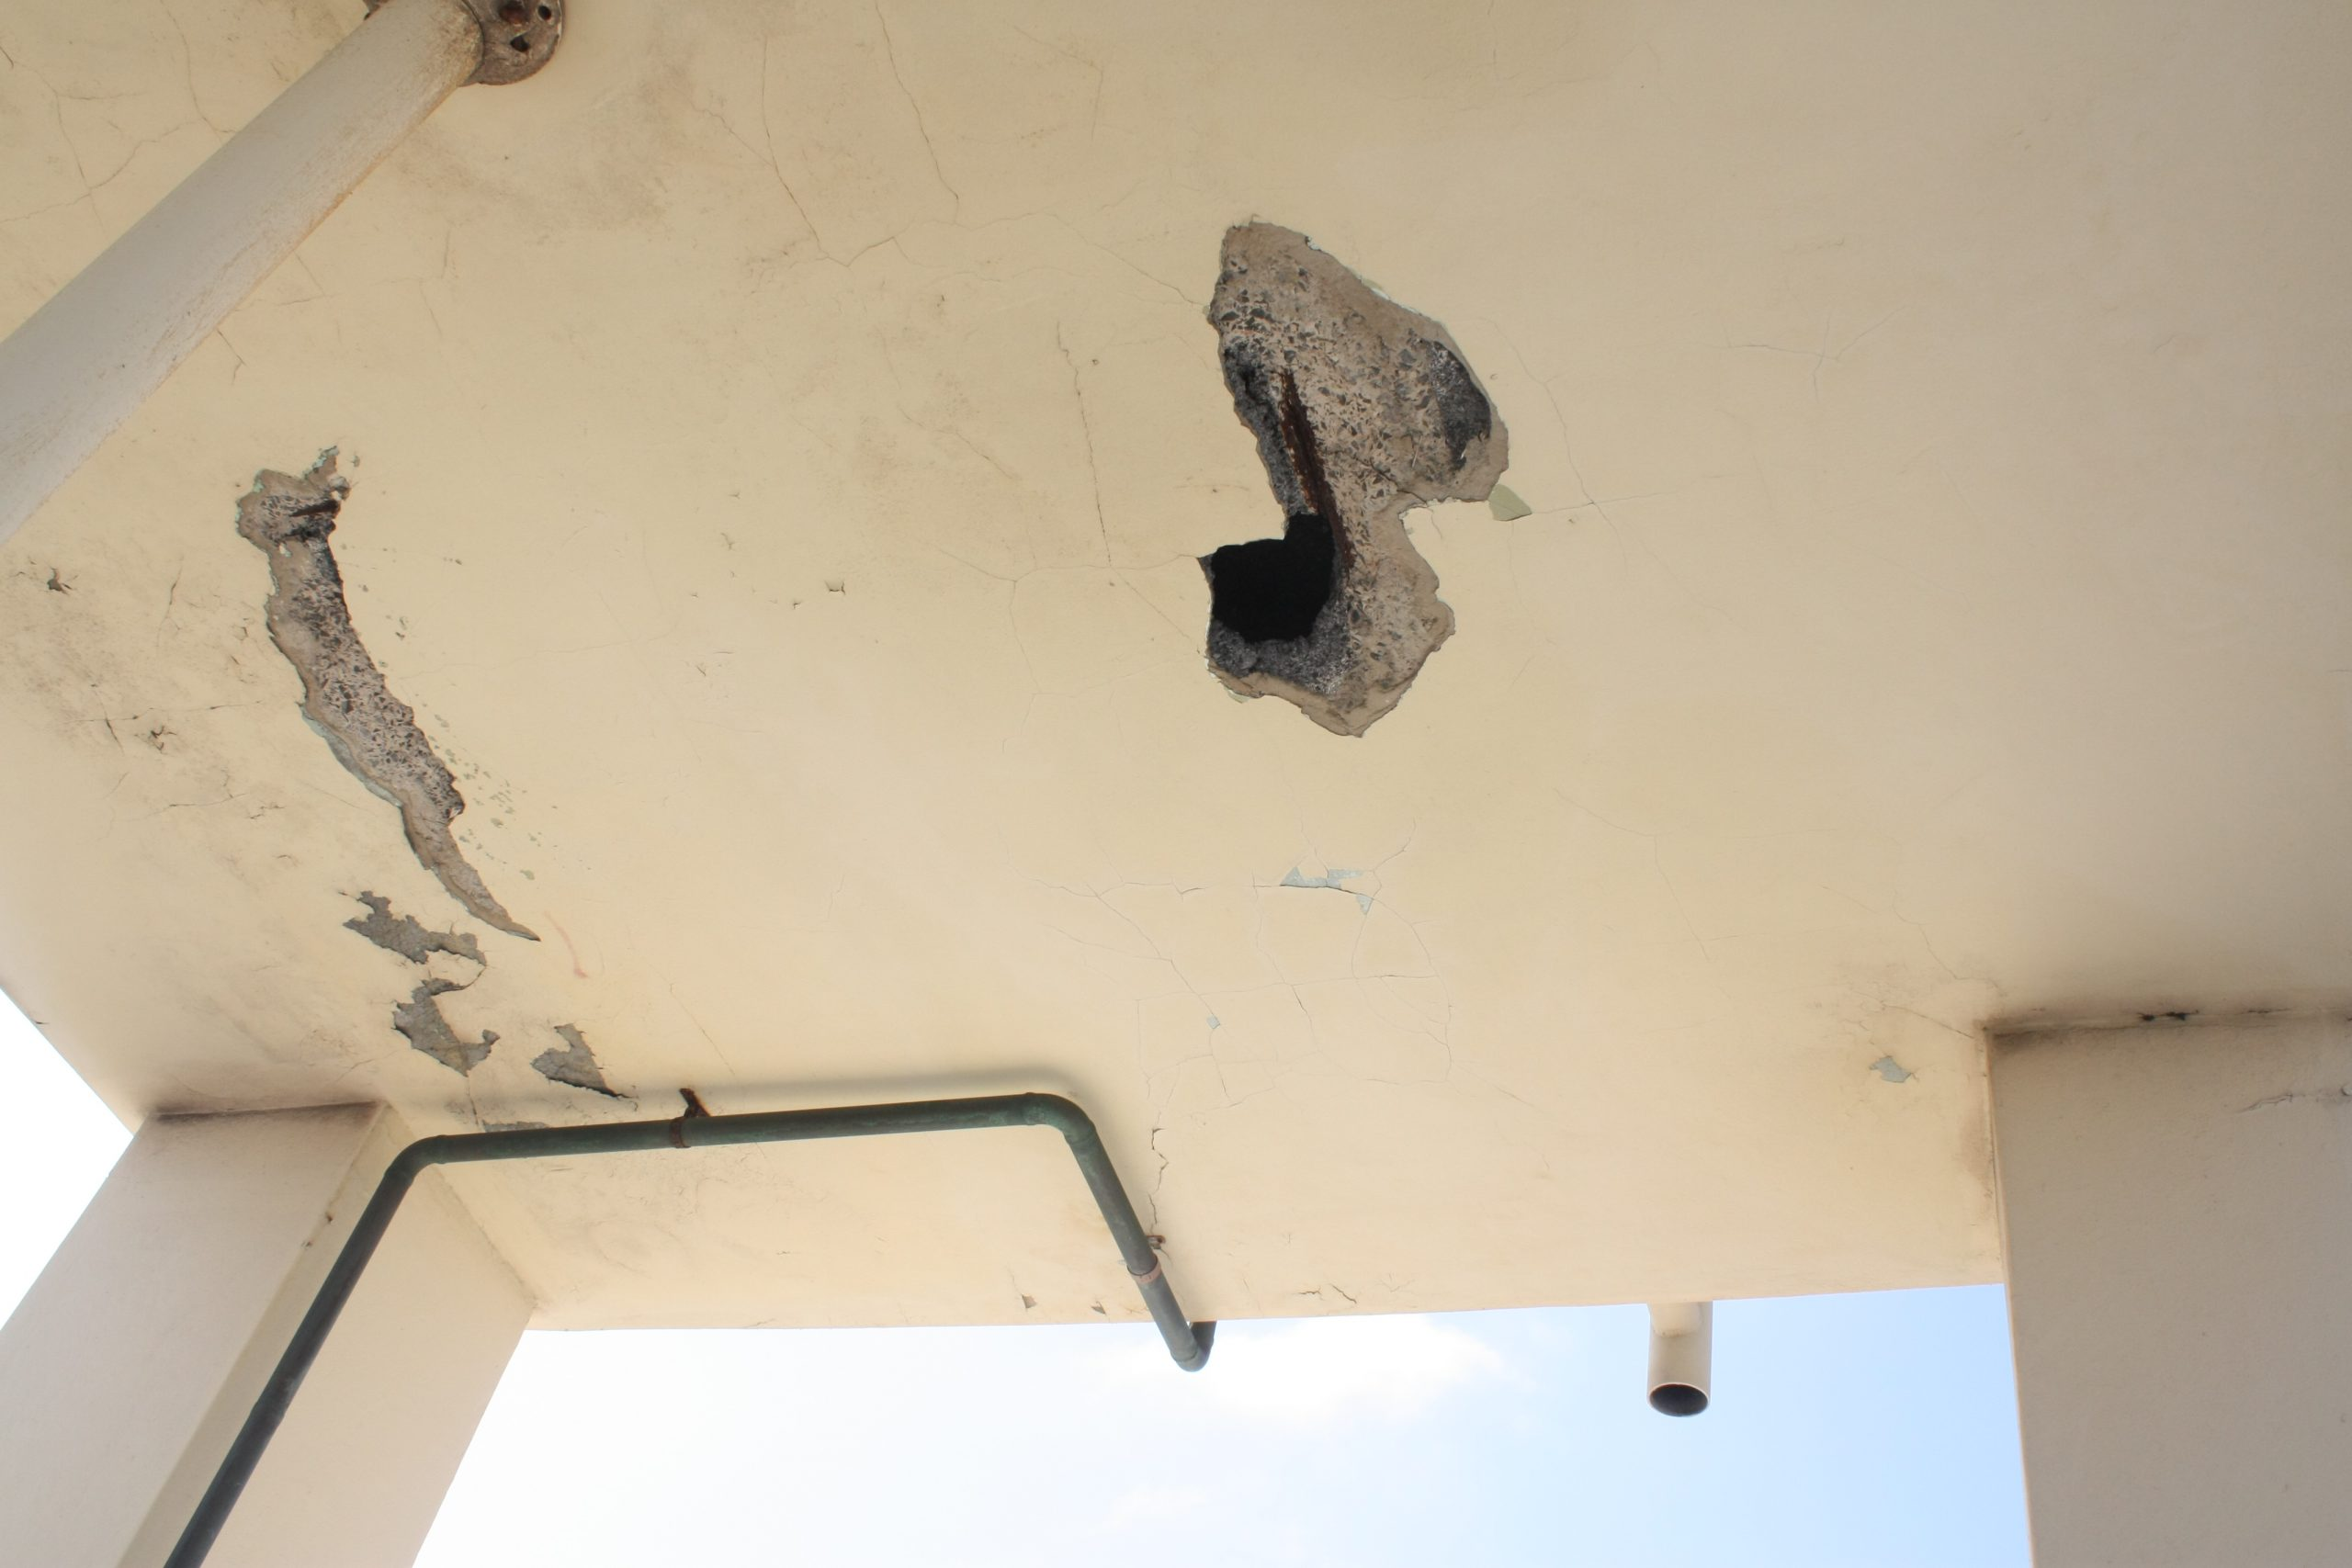 Spalling On Underslide Of Slab - Concrete Repair - Remedial Building Services